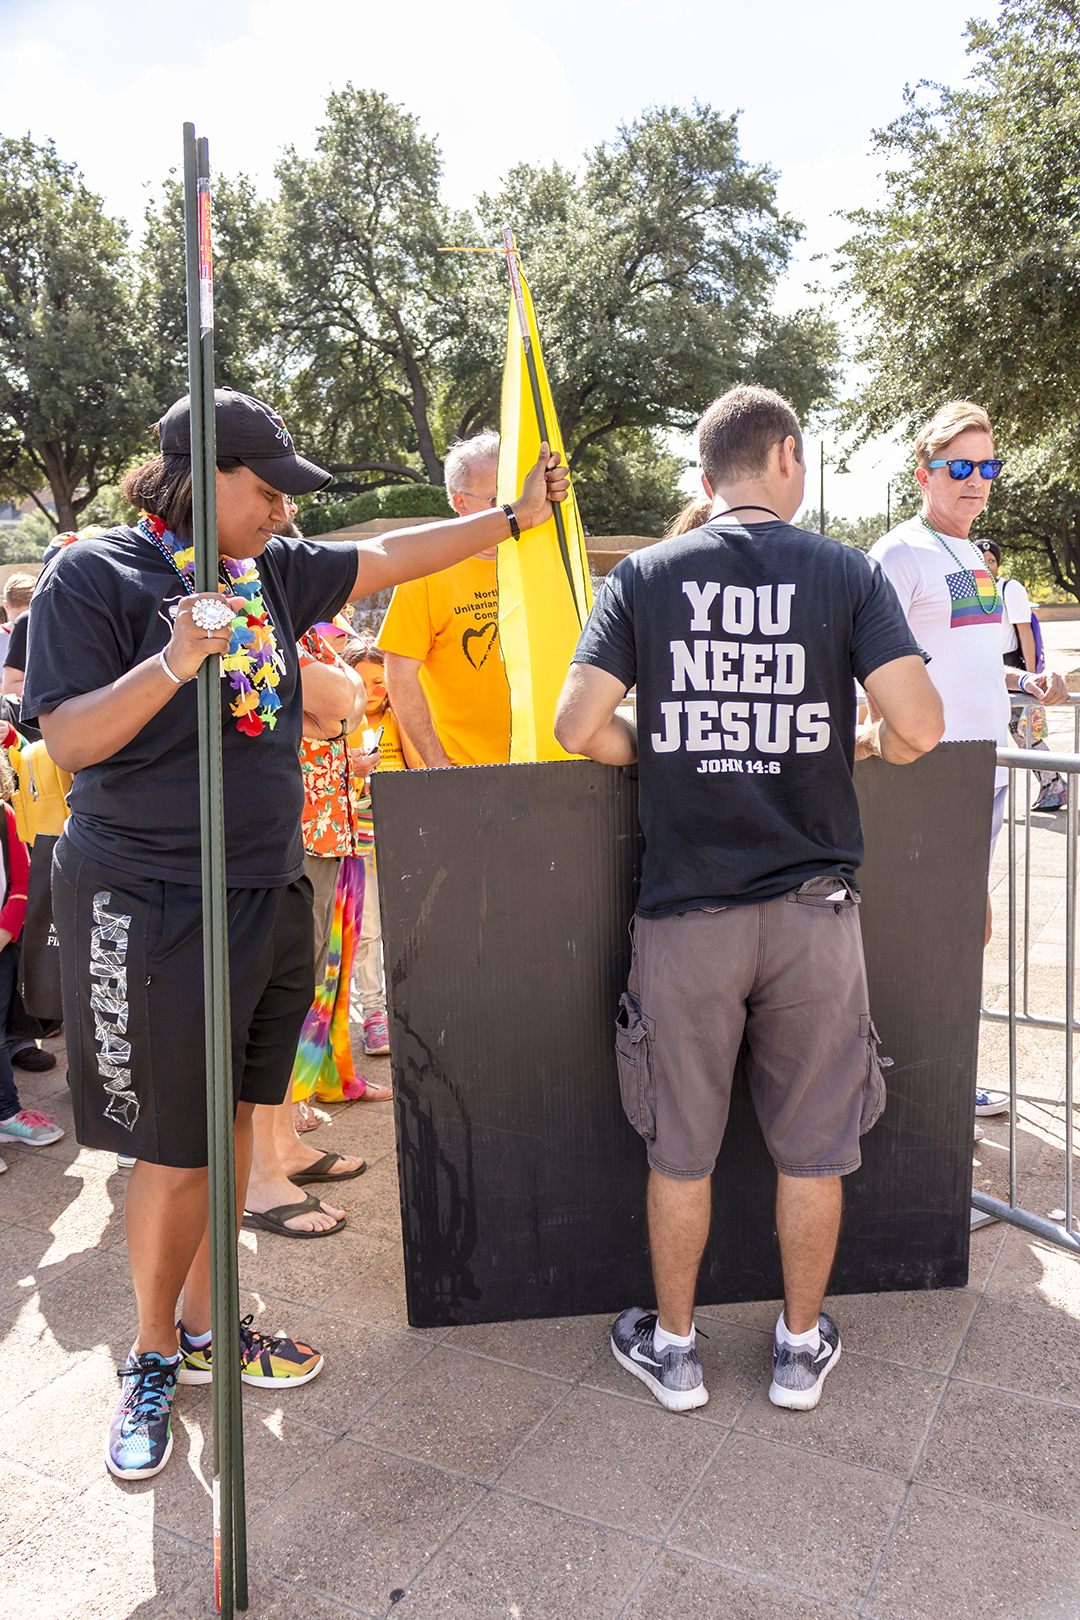 DFW Sisters of Perpetual Indulgence member Ashley Bobb blocks a protester.